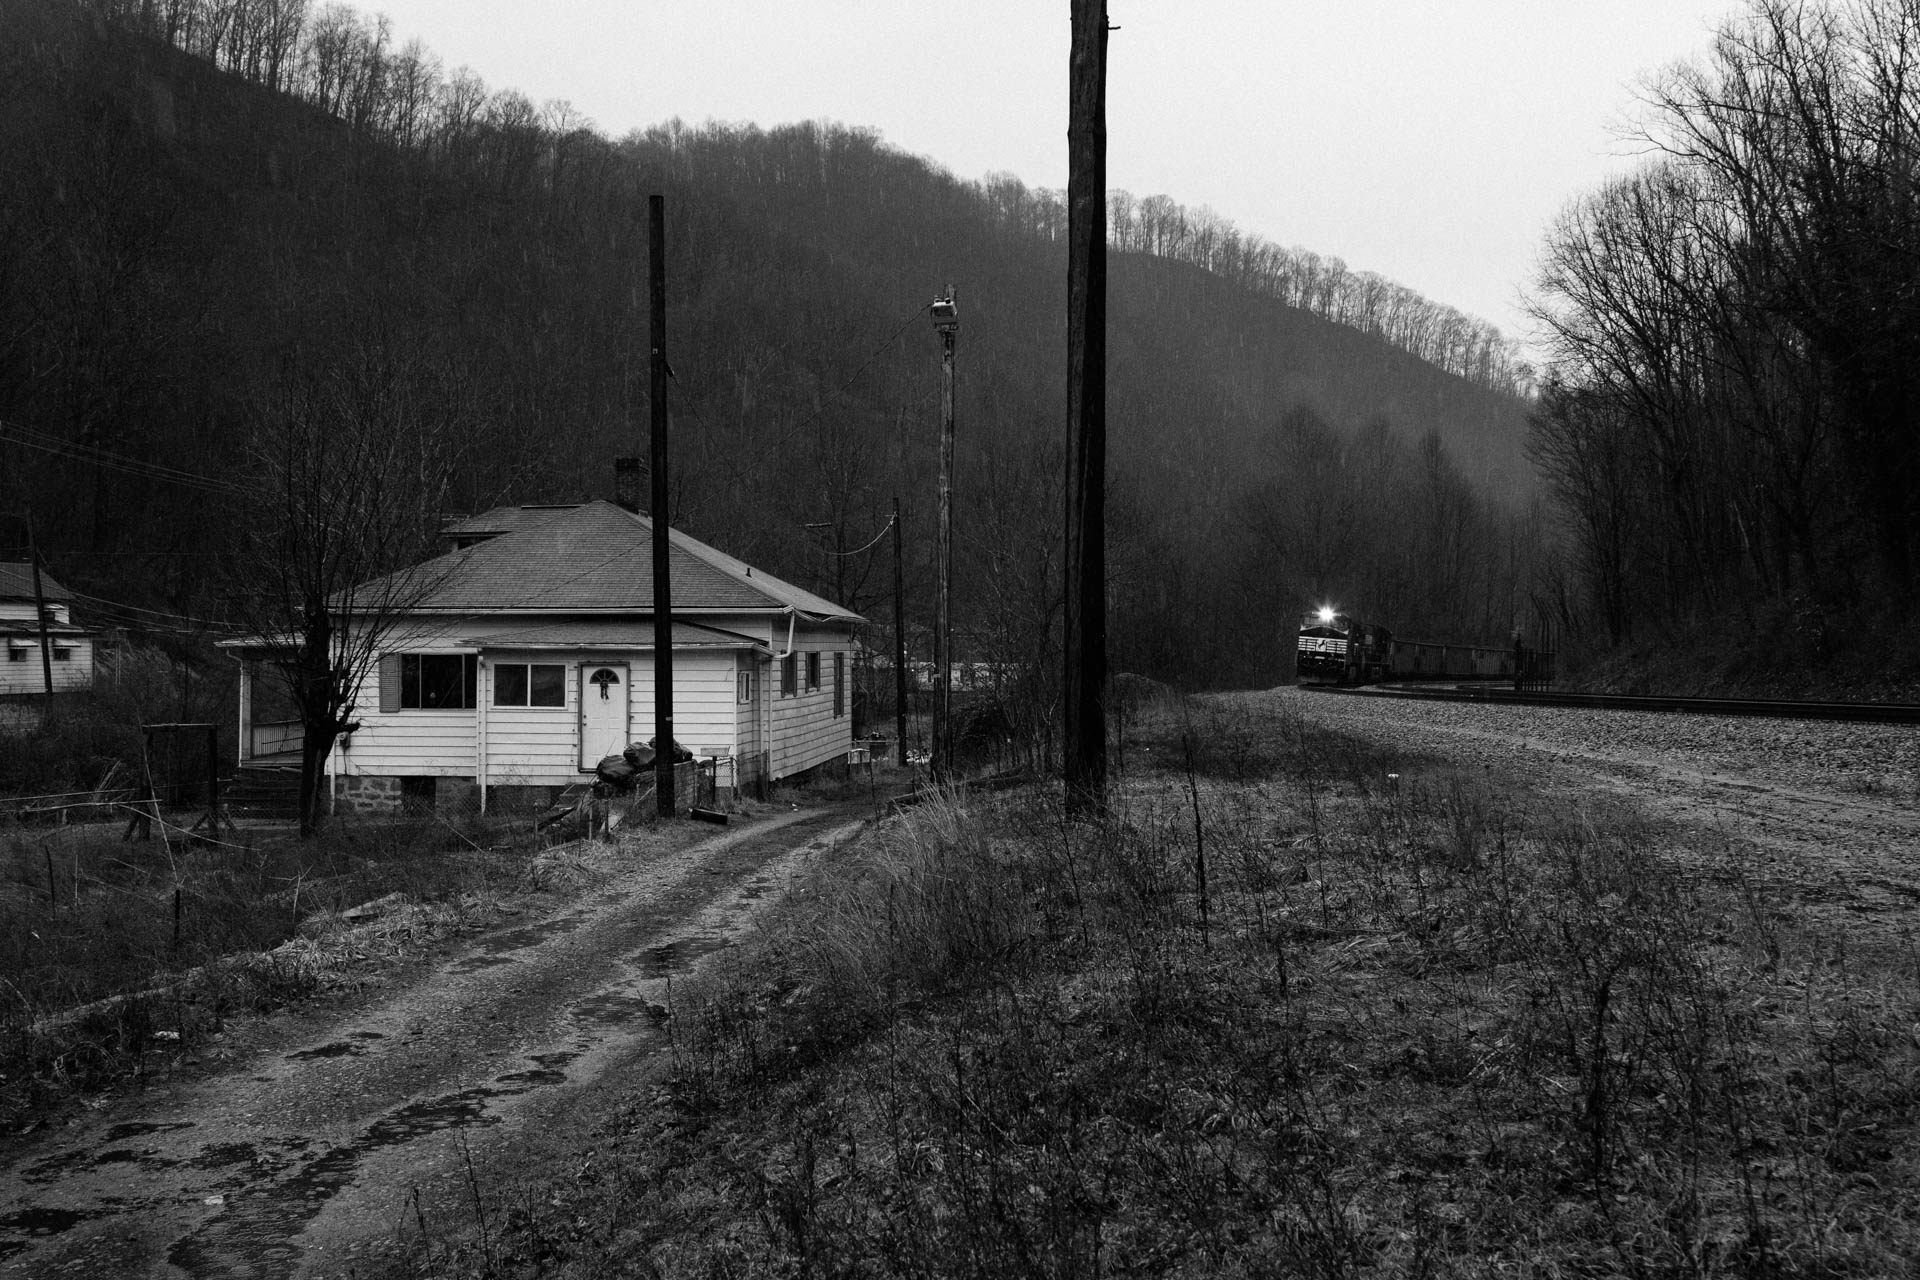 dreary-day-norfolk-southern-railroad-white-house-mountains-powhatan-wv-1520.JPG